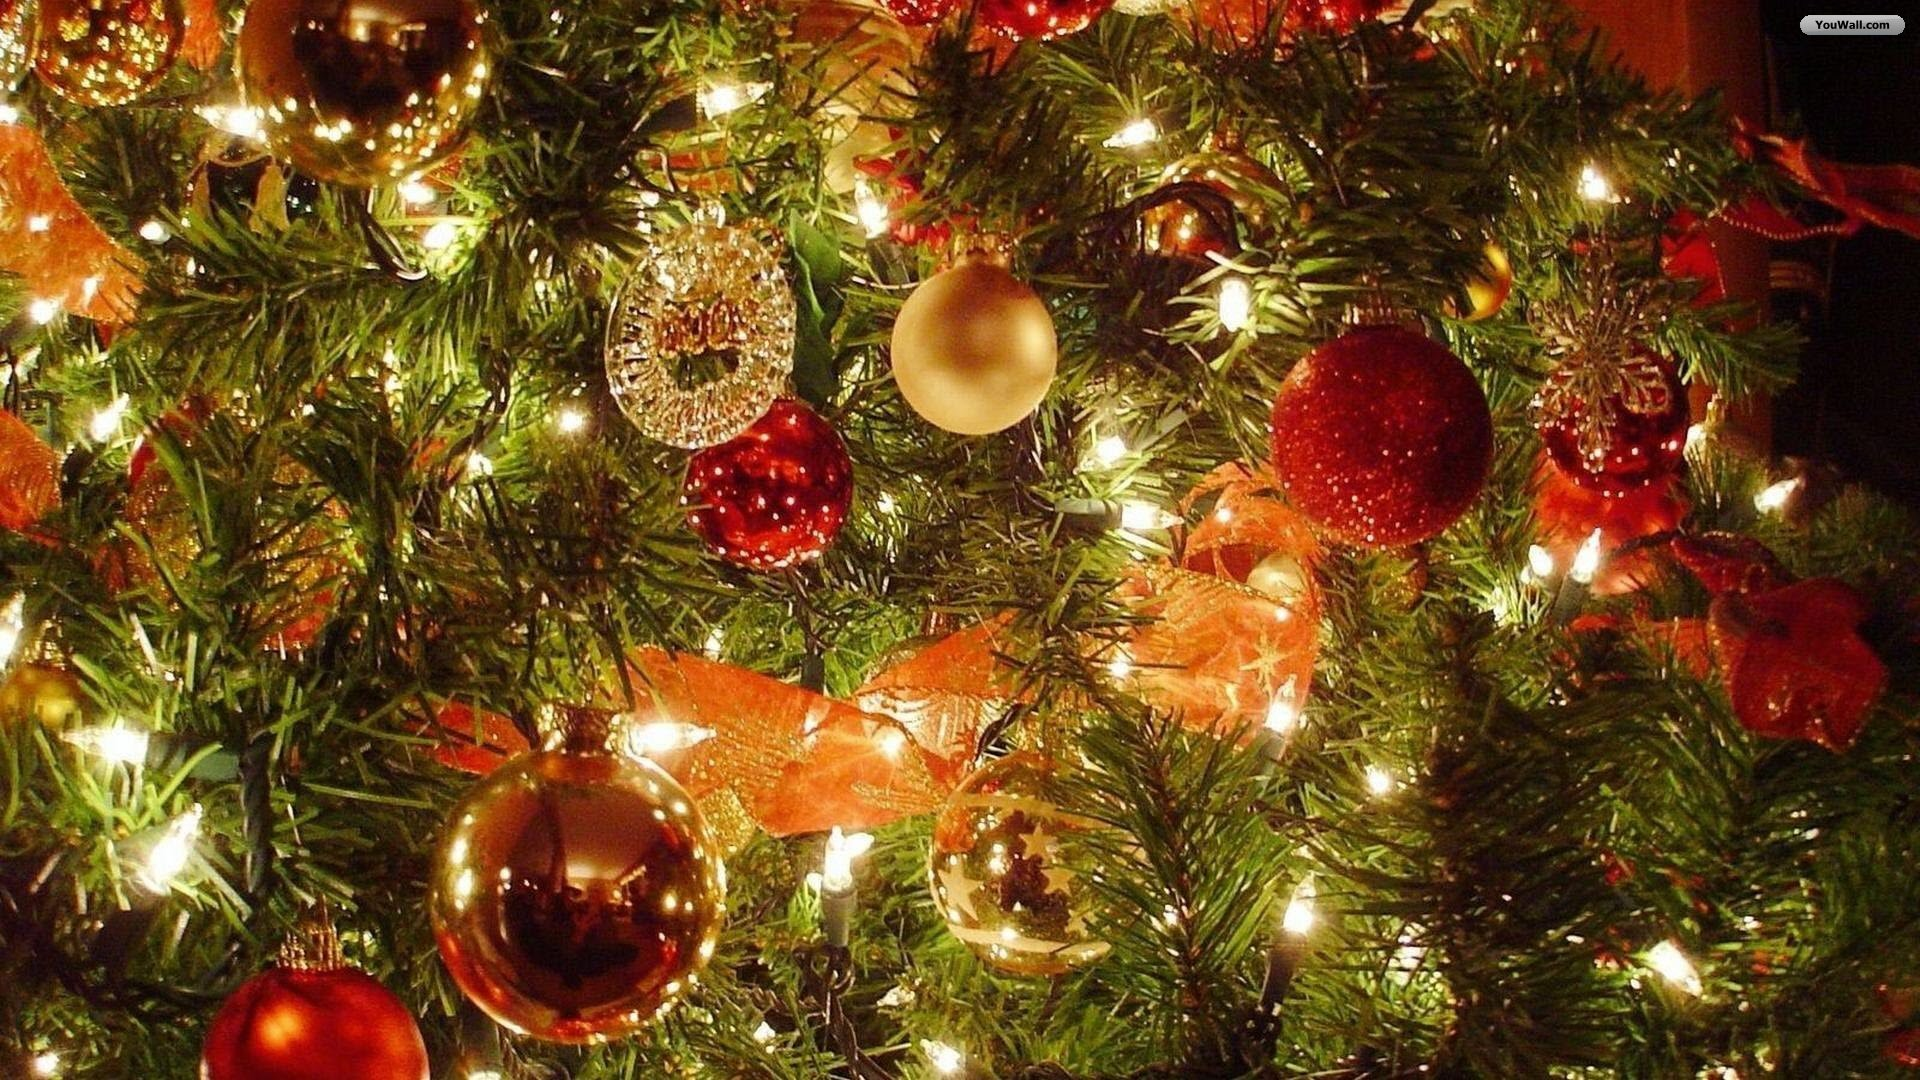 Free Christmas Wallpaper Backgrounds.Christmas Computer Wallpaper Background 52 Images